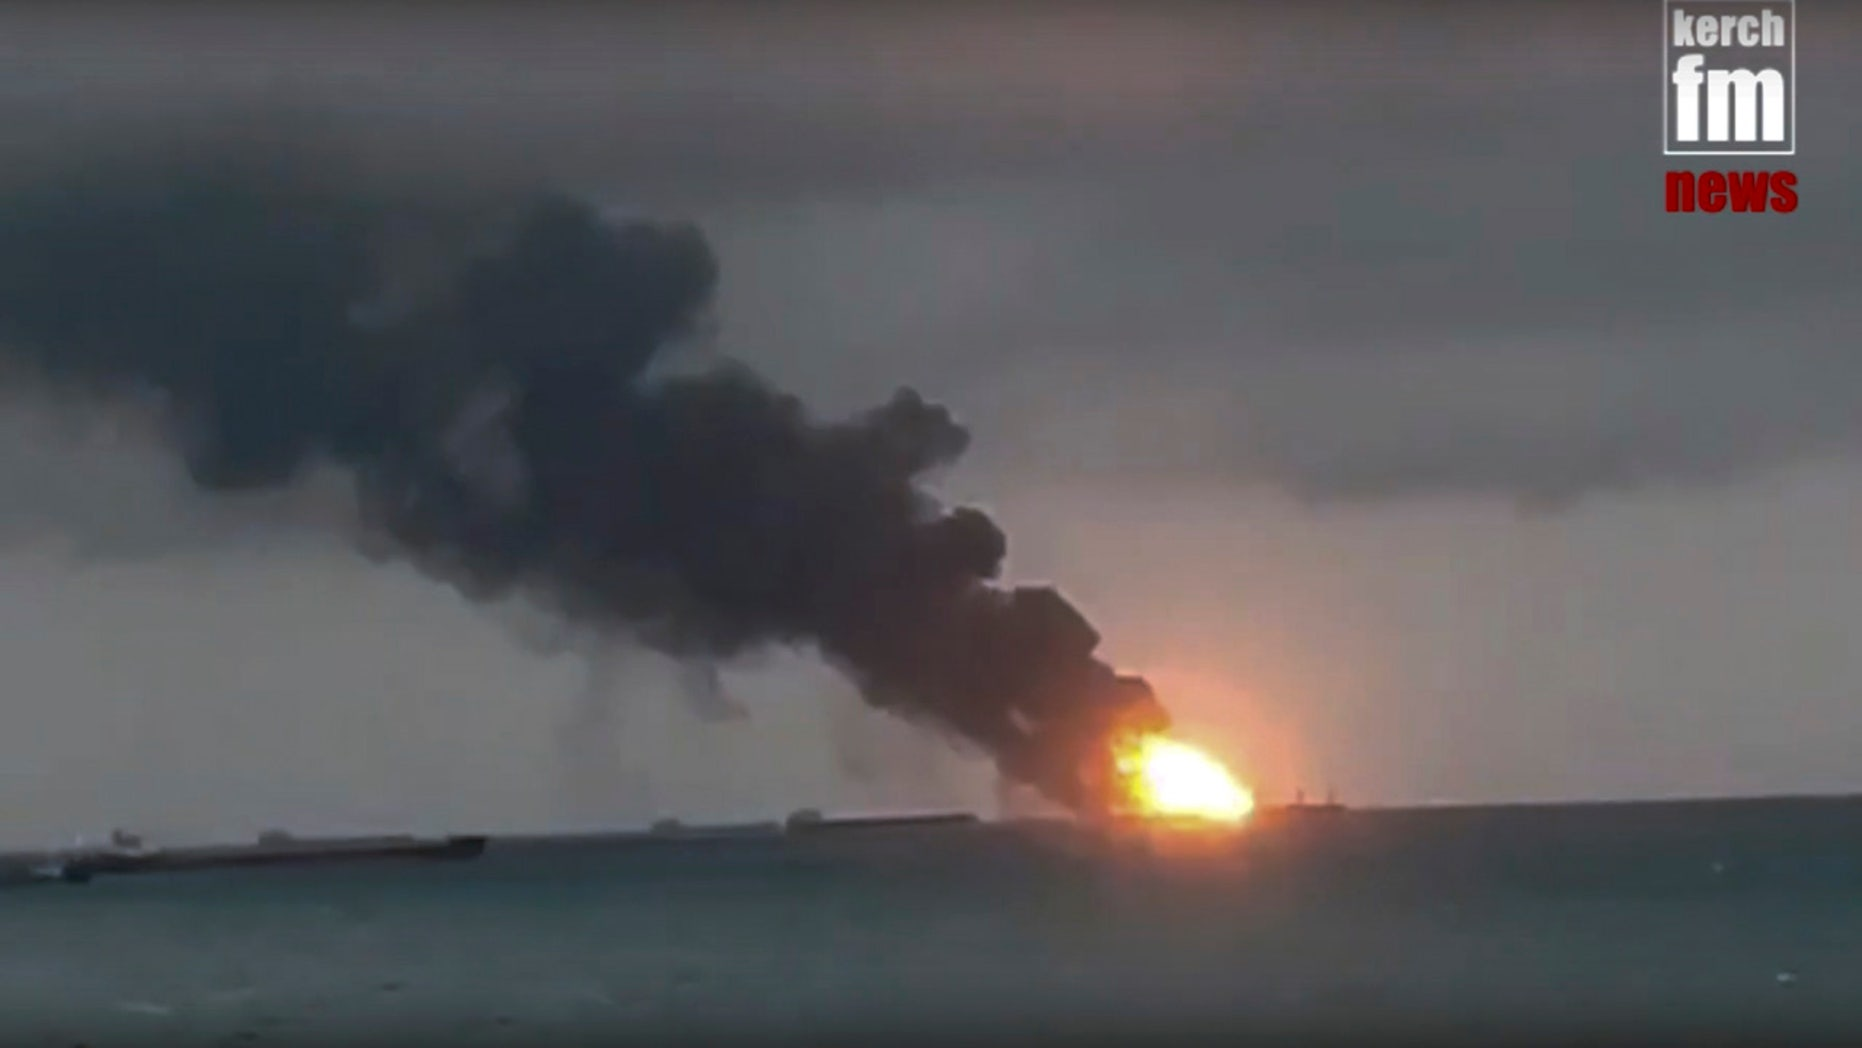 In this video grab provided by the Kerch.fm web portal, the two vessels, the Maestro and the Candy, were burning near the Kerch Strait linking the Black Sea and the Sea of Azov on Monday. (Kerch.fm via AP)